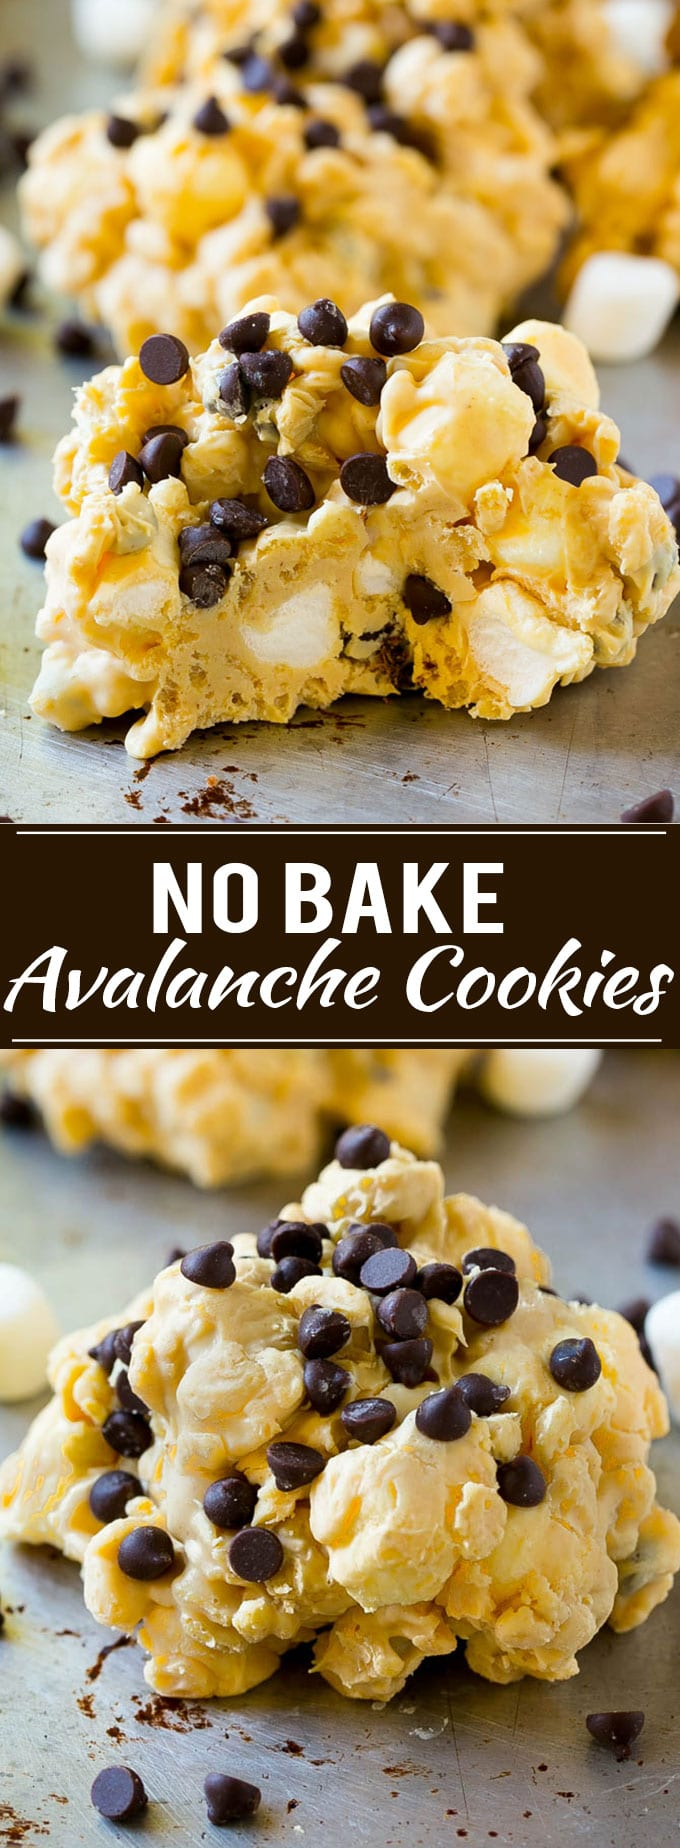 Avalanche Cookies Recipe | No Bake Cookie Recipe | Easy Cookie Recipe | Avalanche Bark